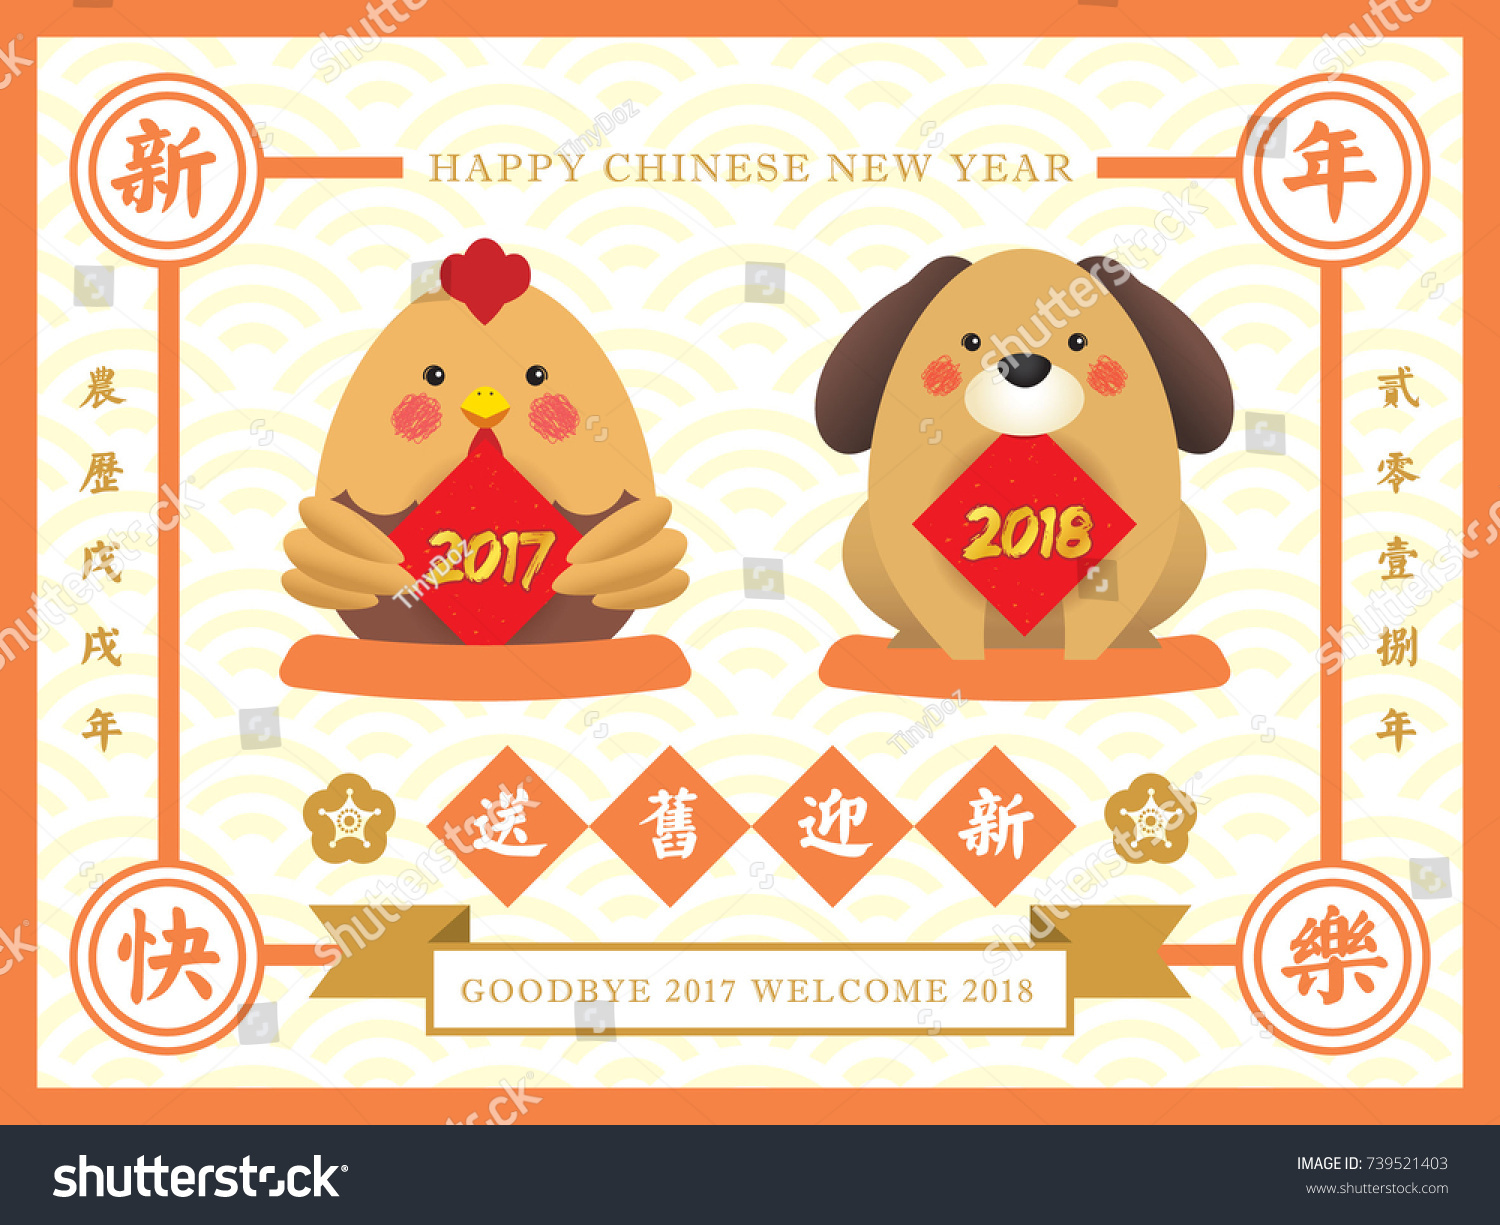 Chinese new year greeting card cute stock vector 739521403 chinese new year greeting card with cute cartoon chicken and dog with couplet in vintage style kristyandbryce Gallery